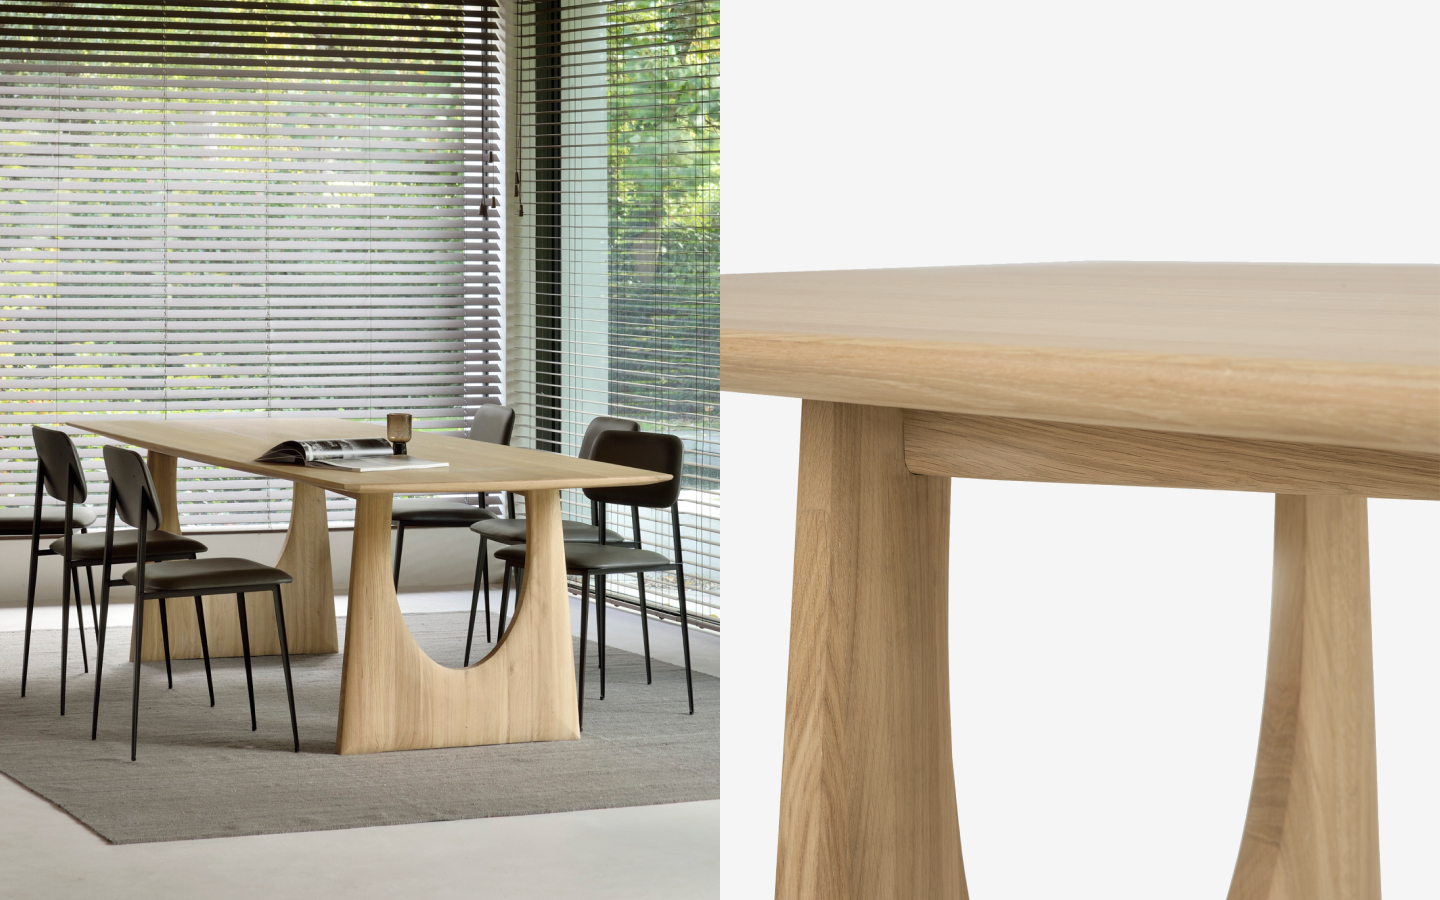 Natural solid wood conference table with u-shaped legs